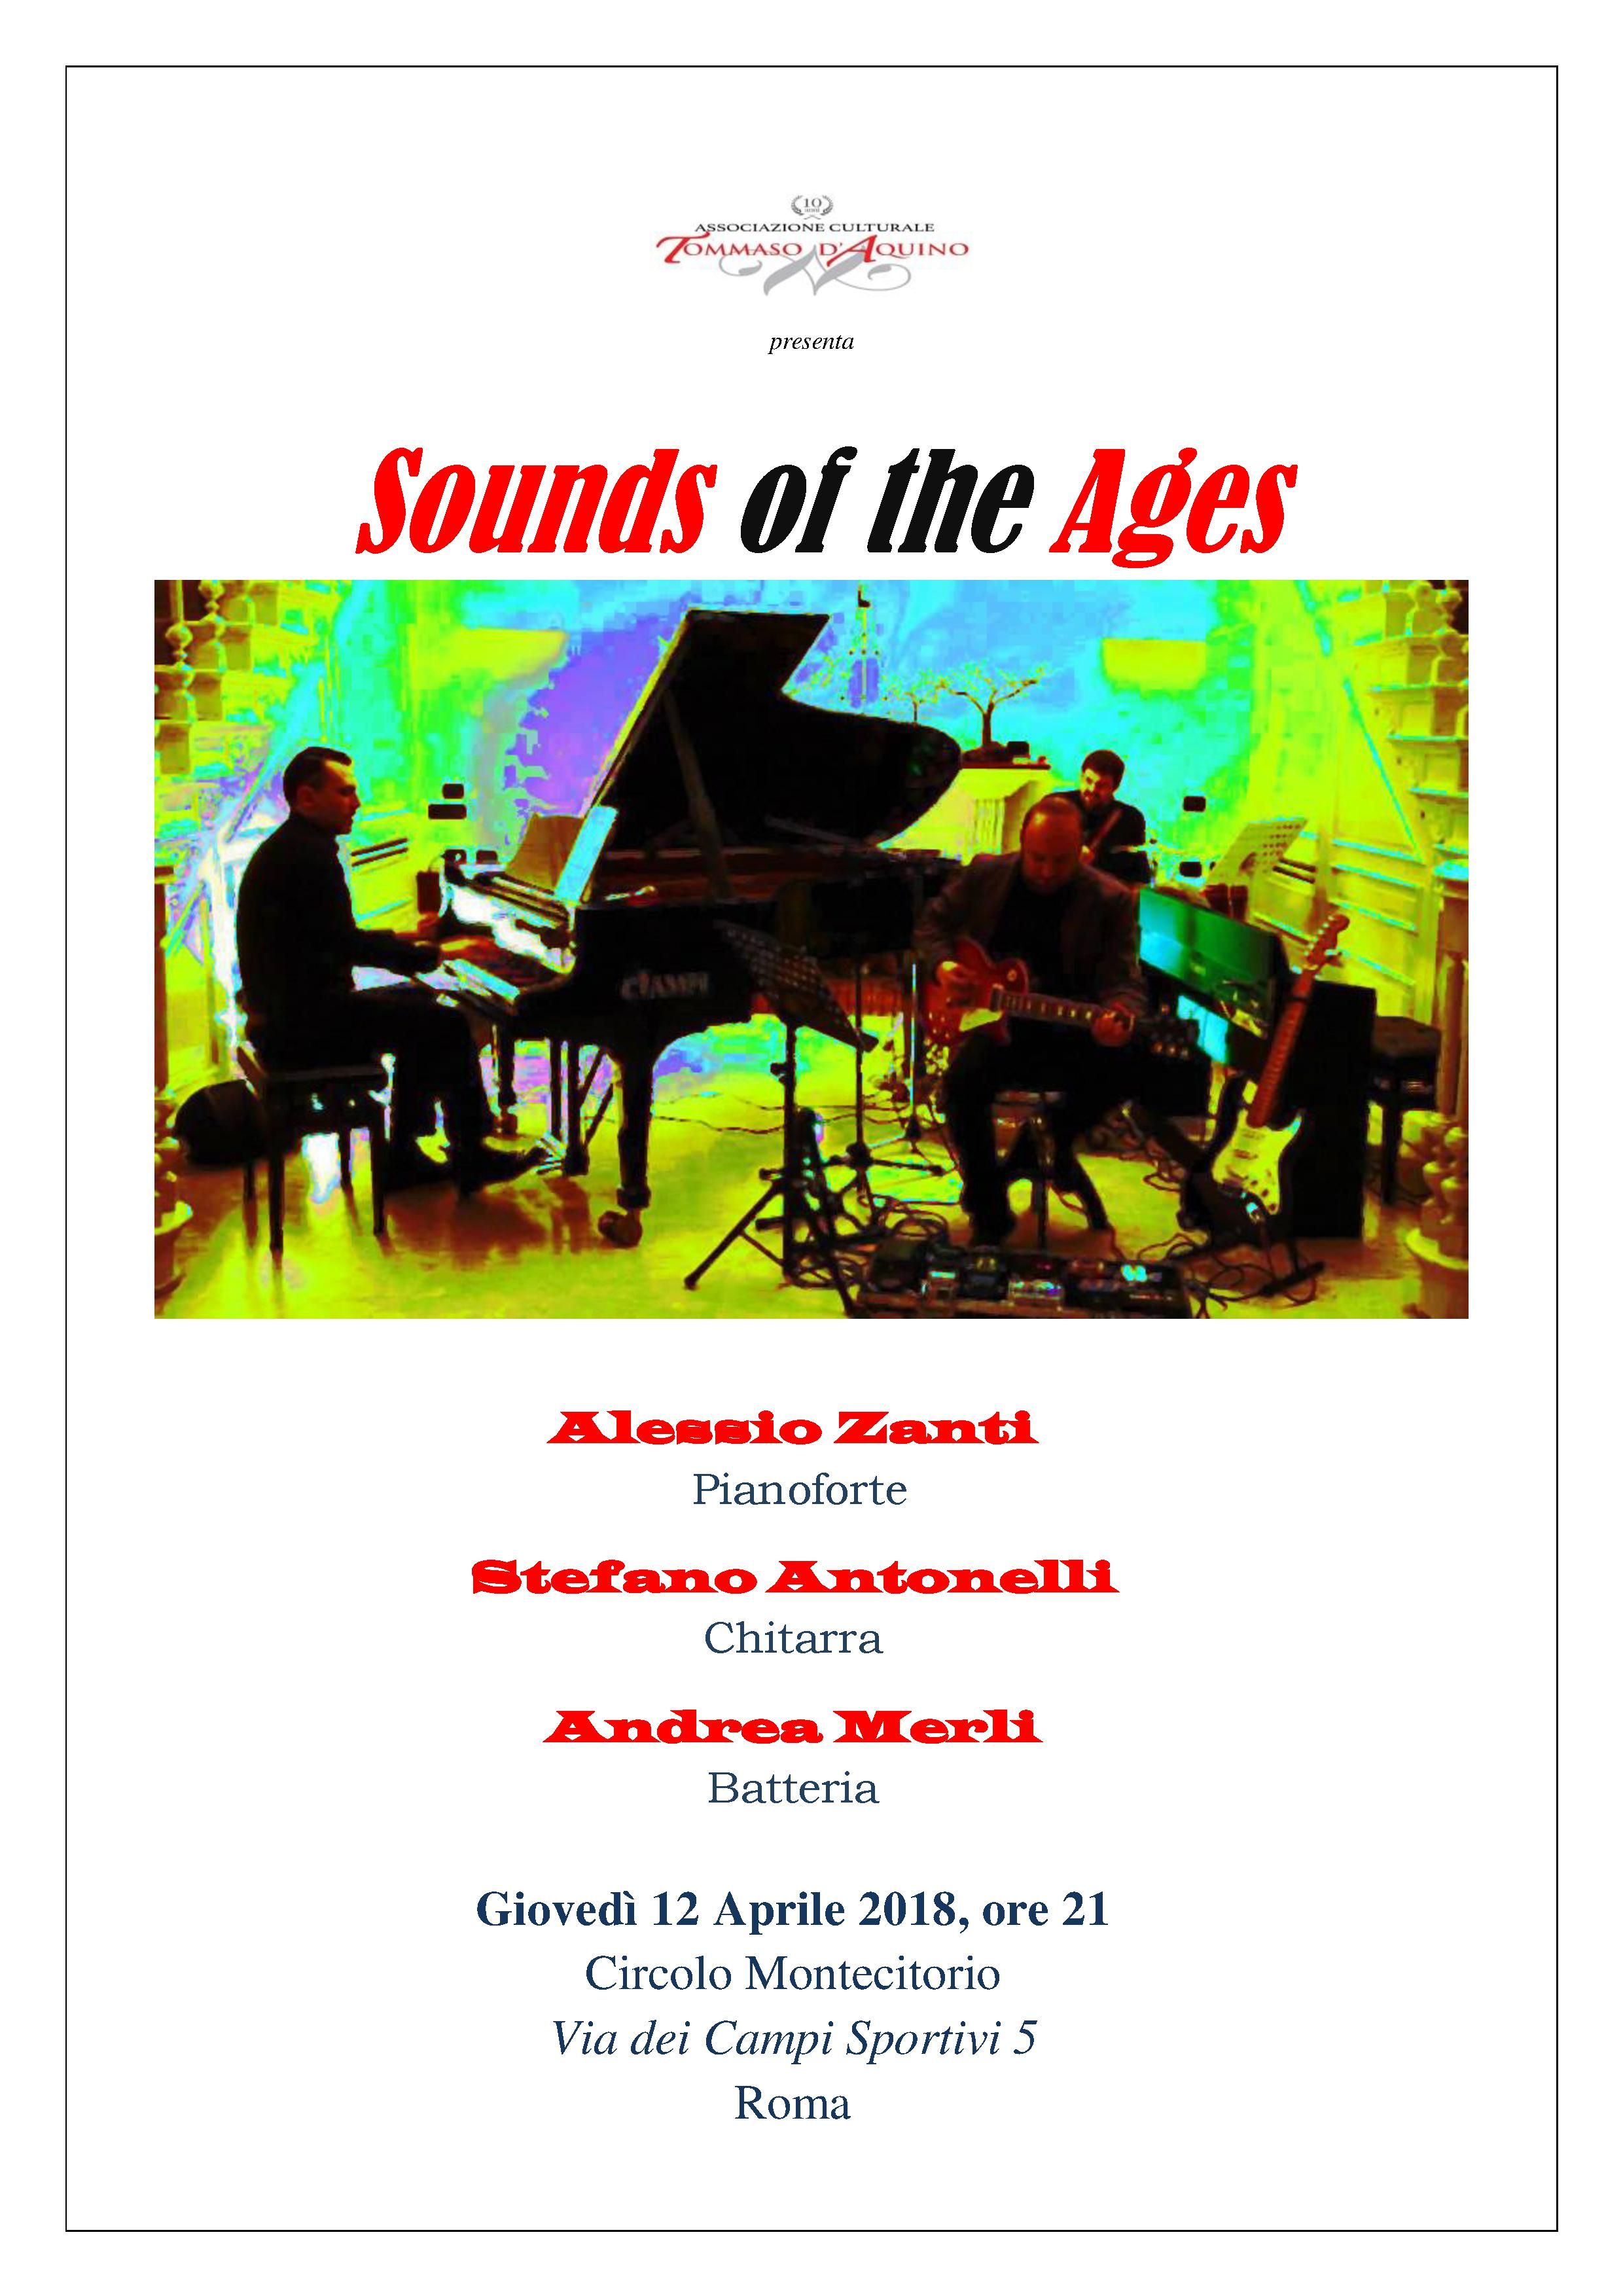 SOUNDS OF THE AGES – Concerto Rock a Roma